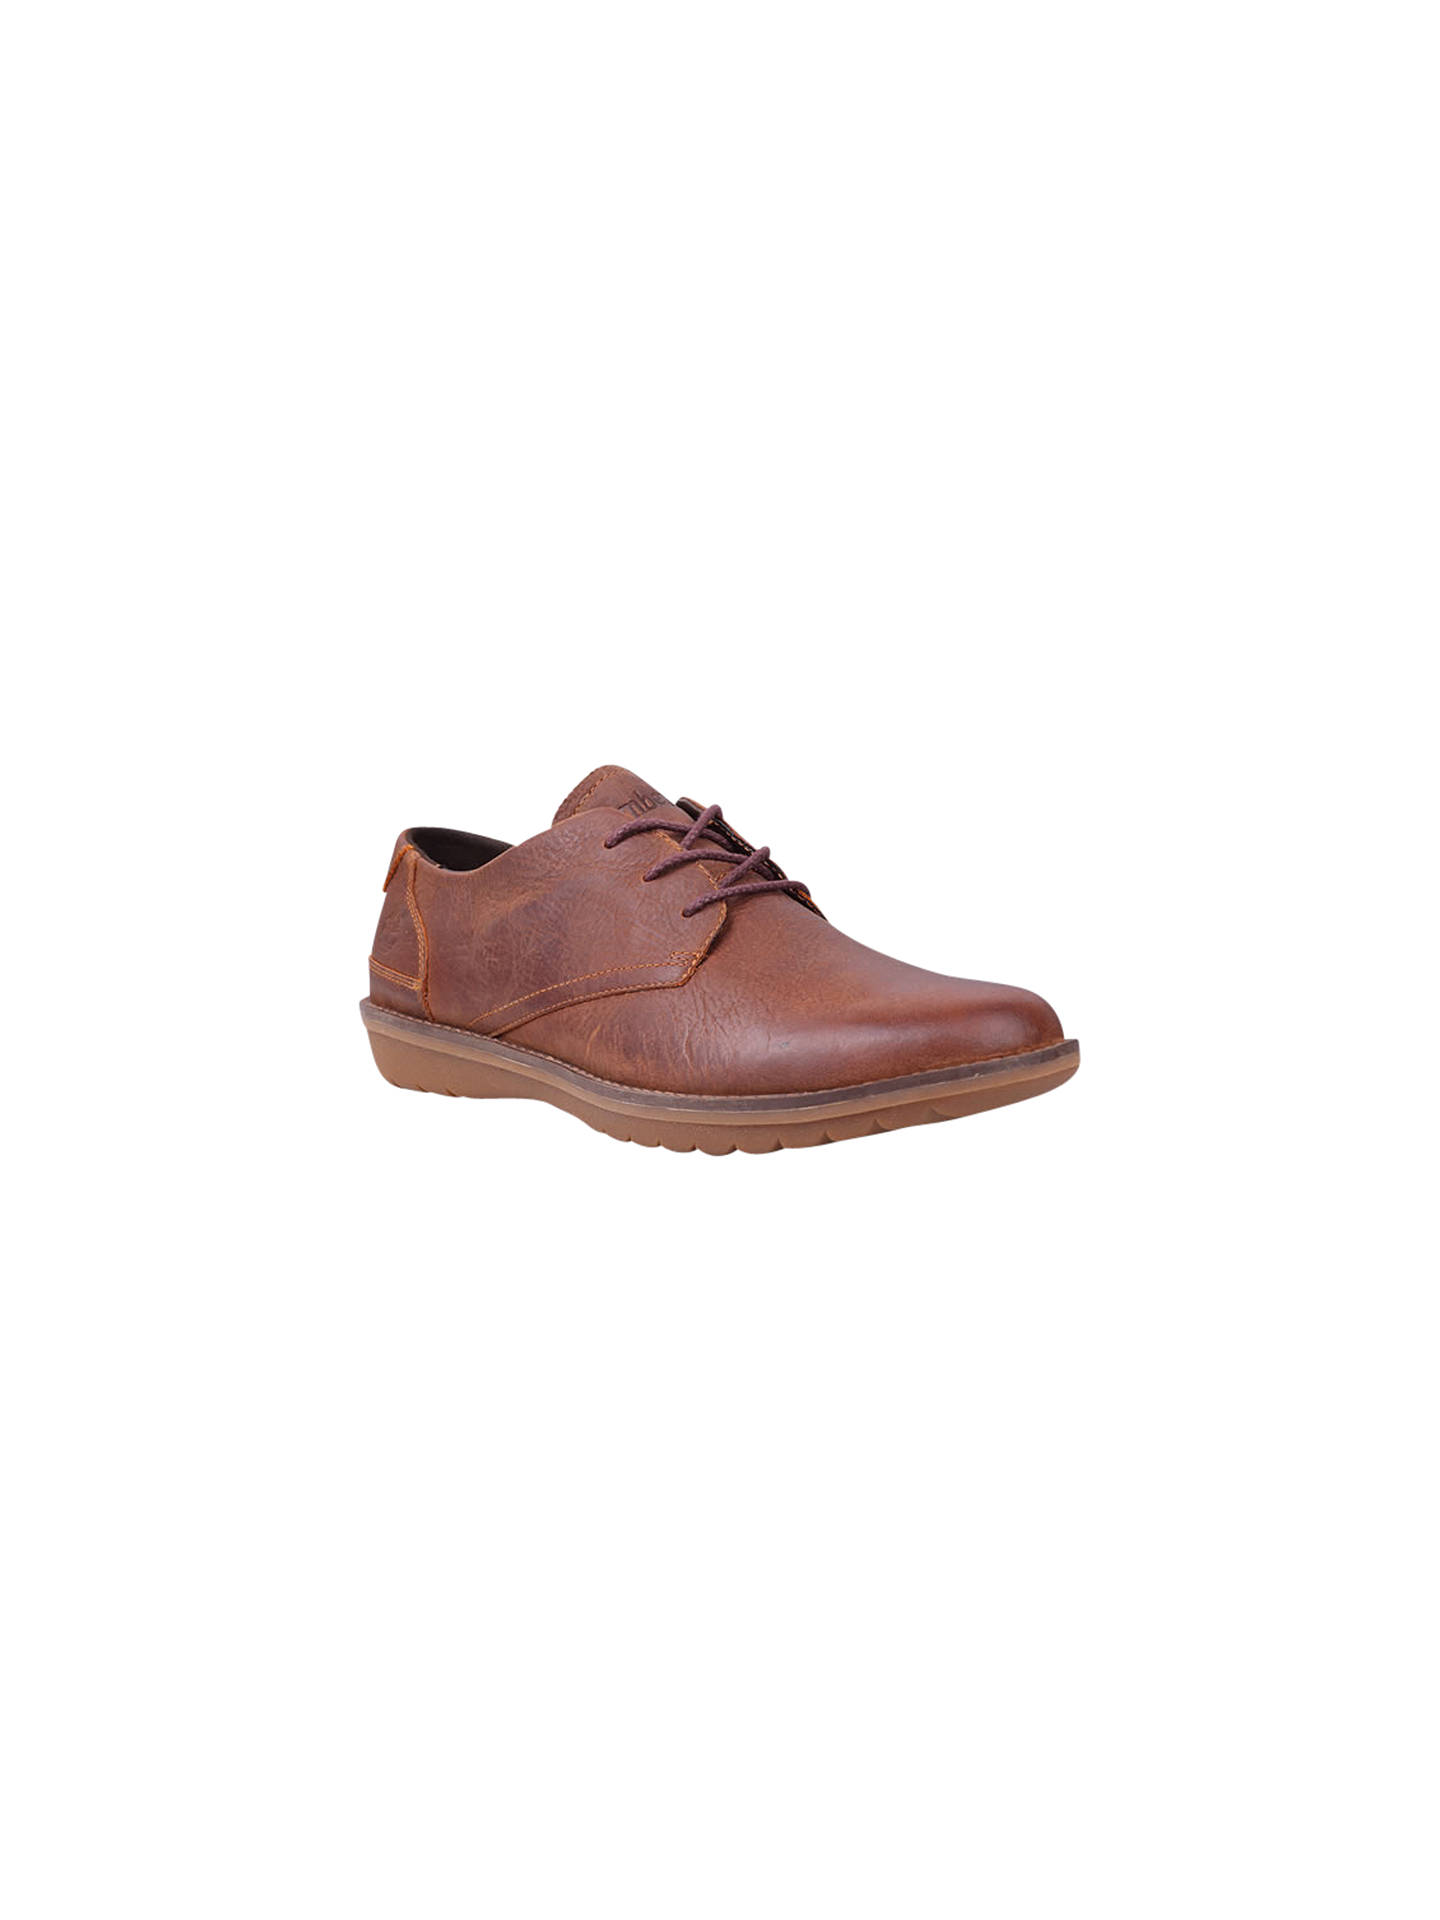 23bdea851b6e Buy Timberland Earthkeepers Front Country Travel Oxford Shoes